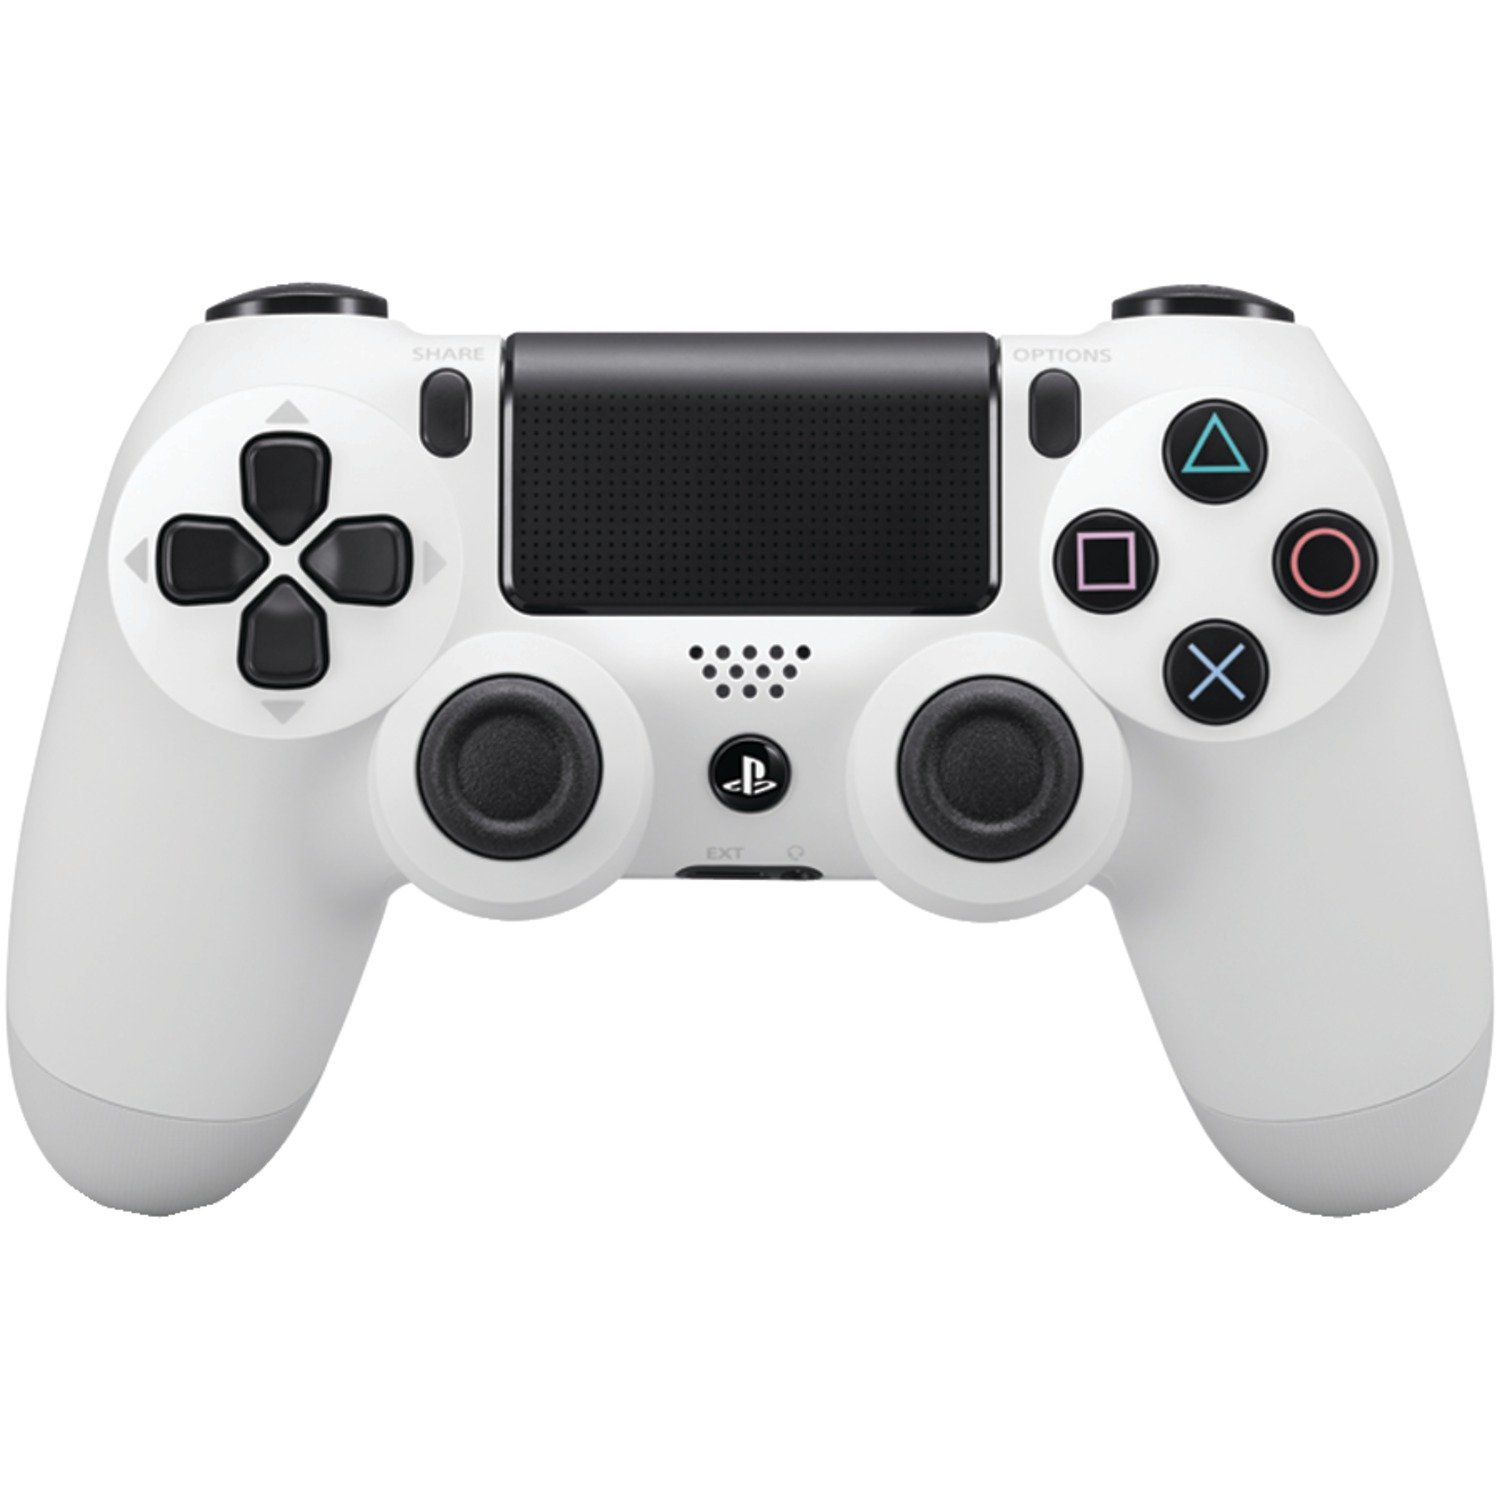 Sony DualShock 4 Wireless Controller for PS4 - Glacier White